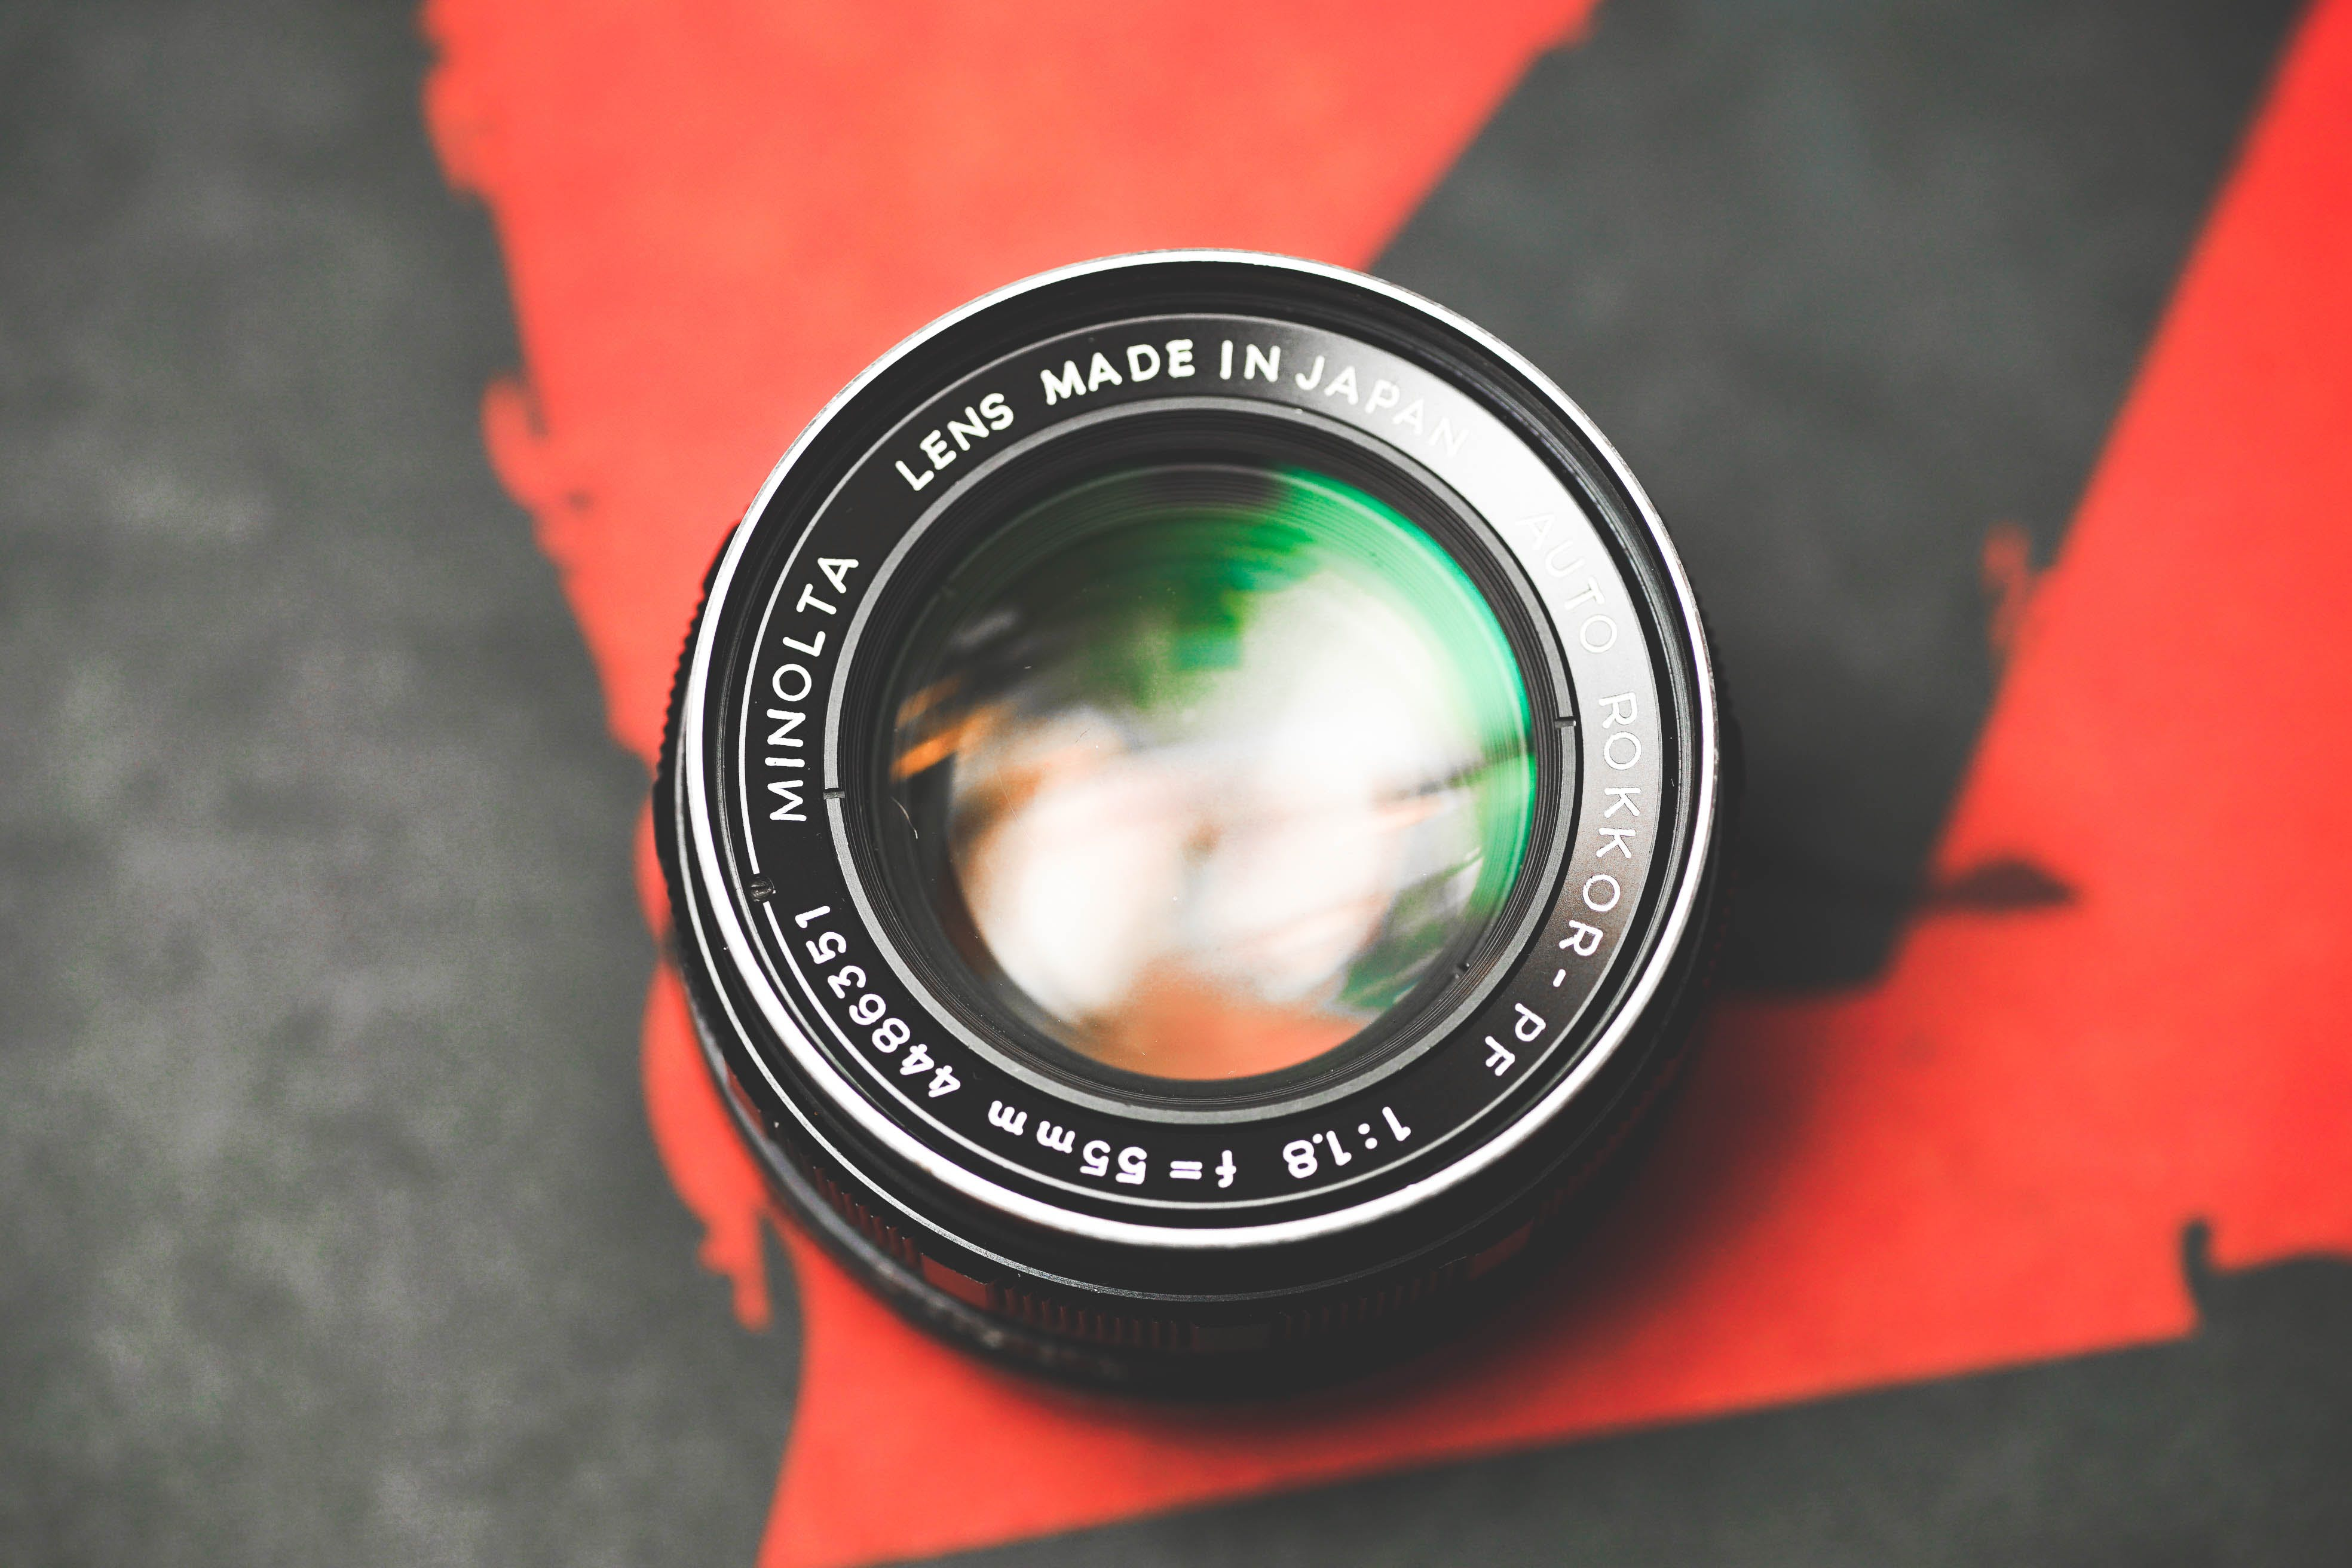 Shallow Focus Photography of Camera Lens